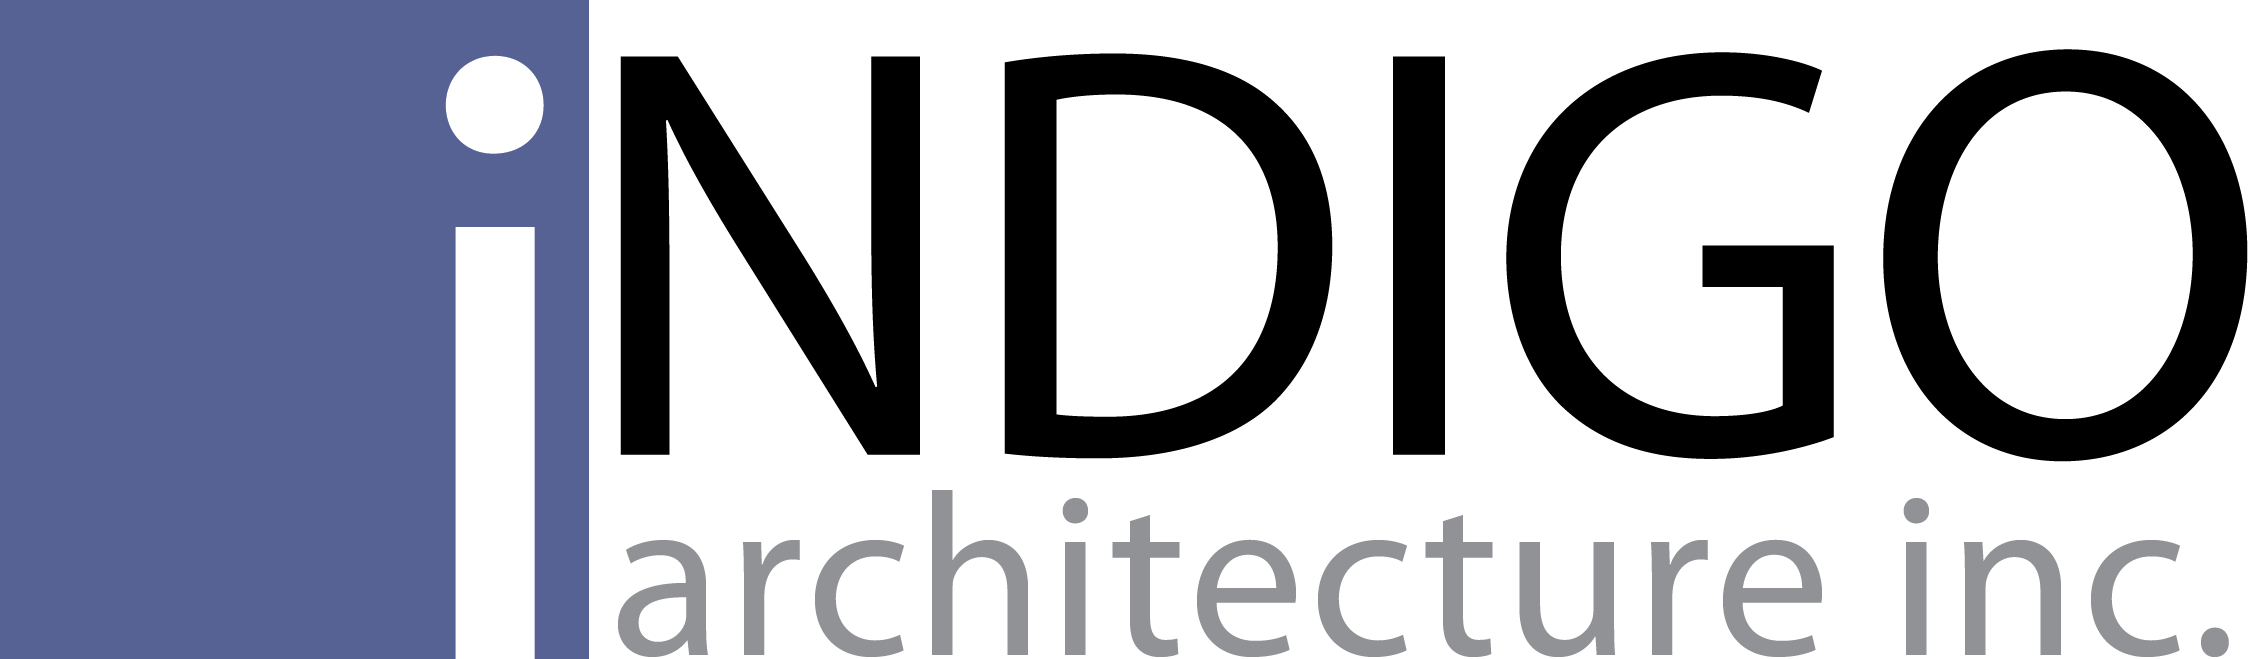 Indigo Architecture, Inc. Website